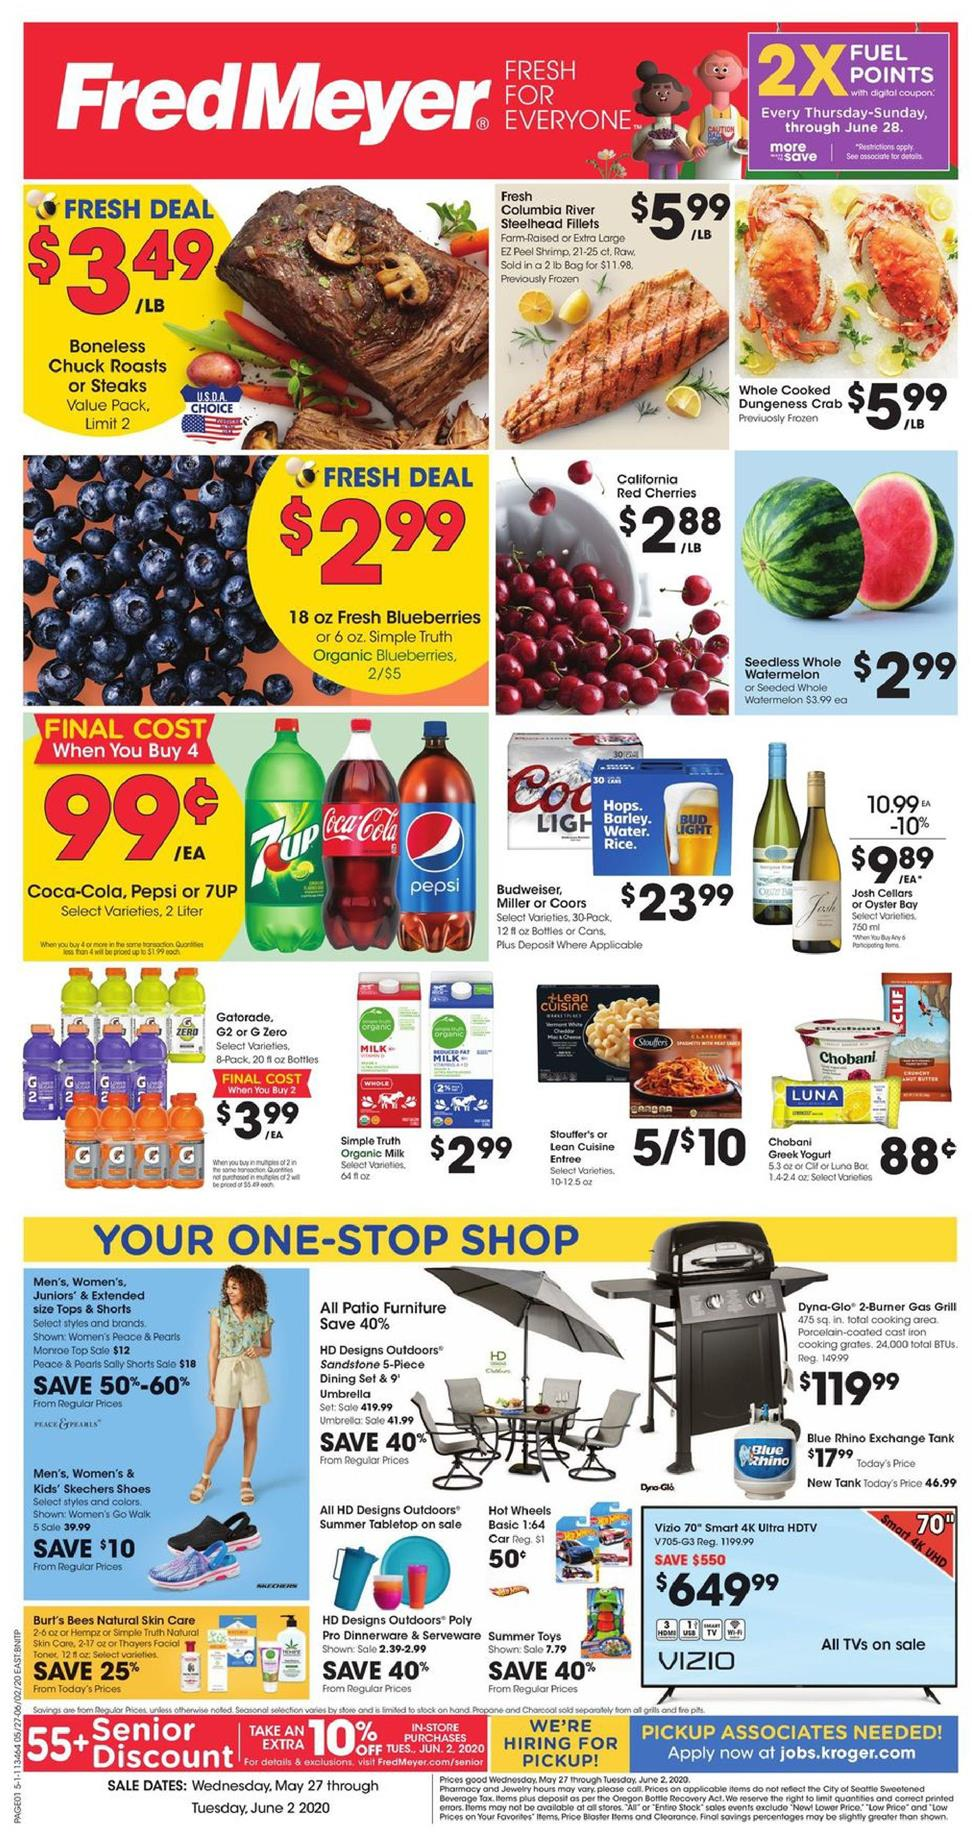 fred meyer final may offer valid from may 27 jun 2 2020